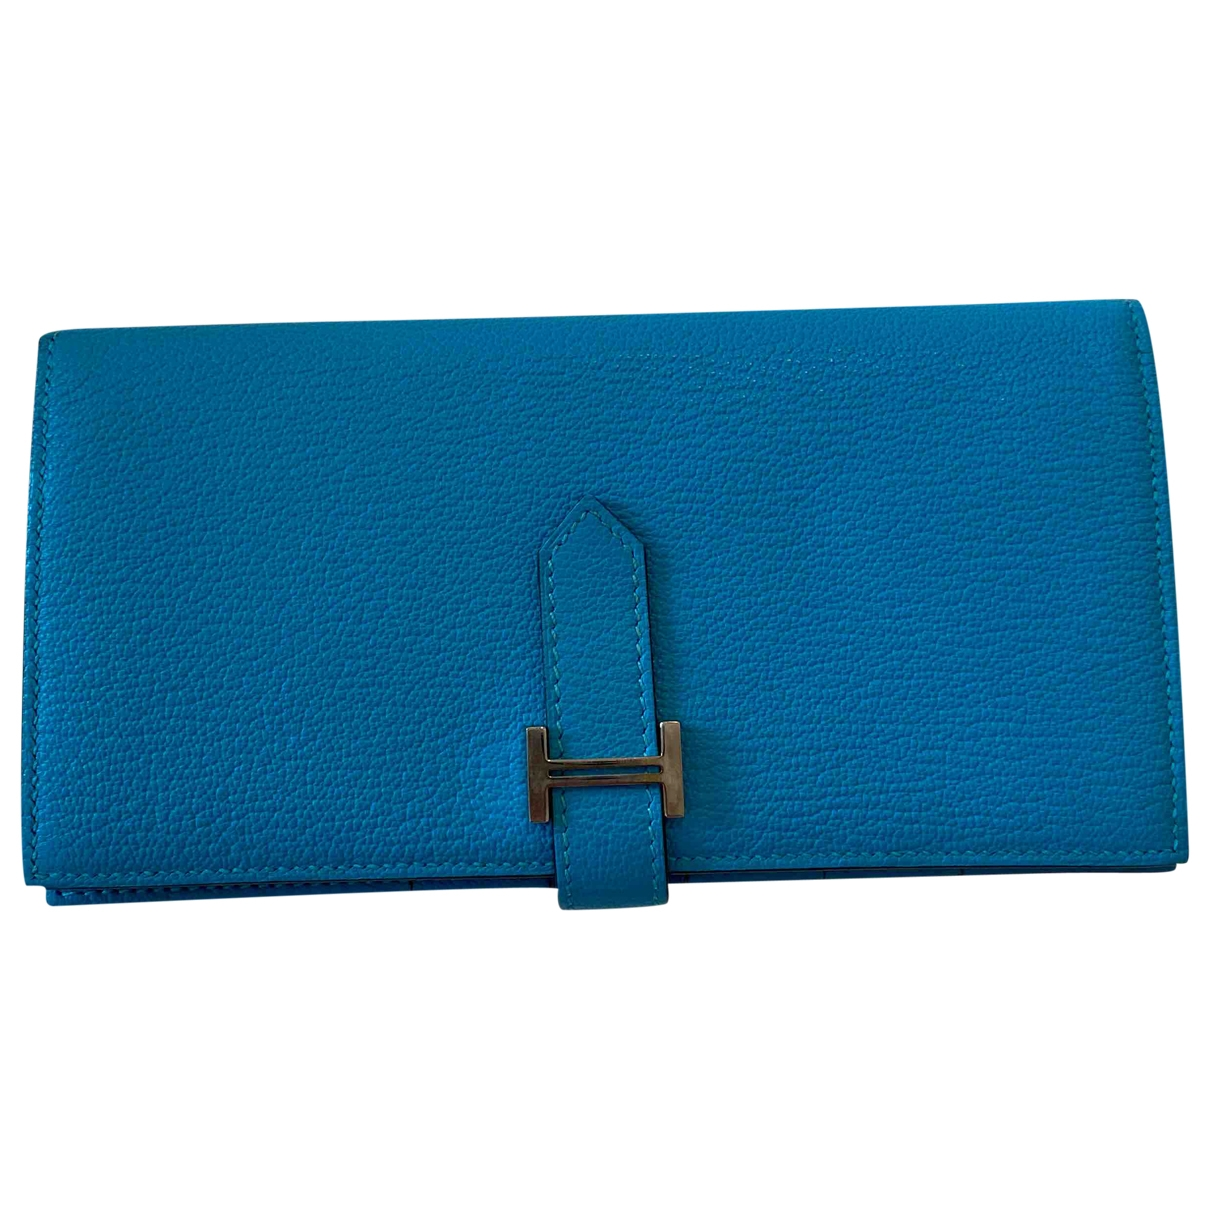 Hermès Béarn Blue Leather wallet for Women \N